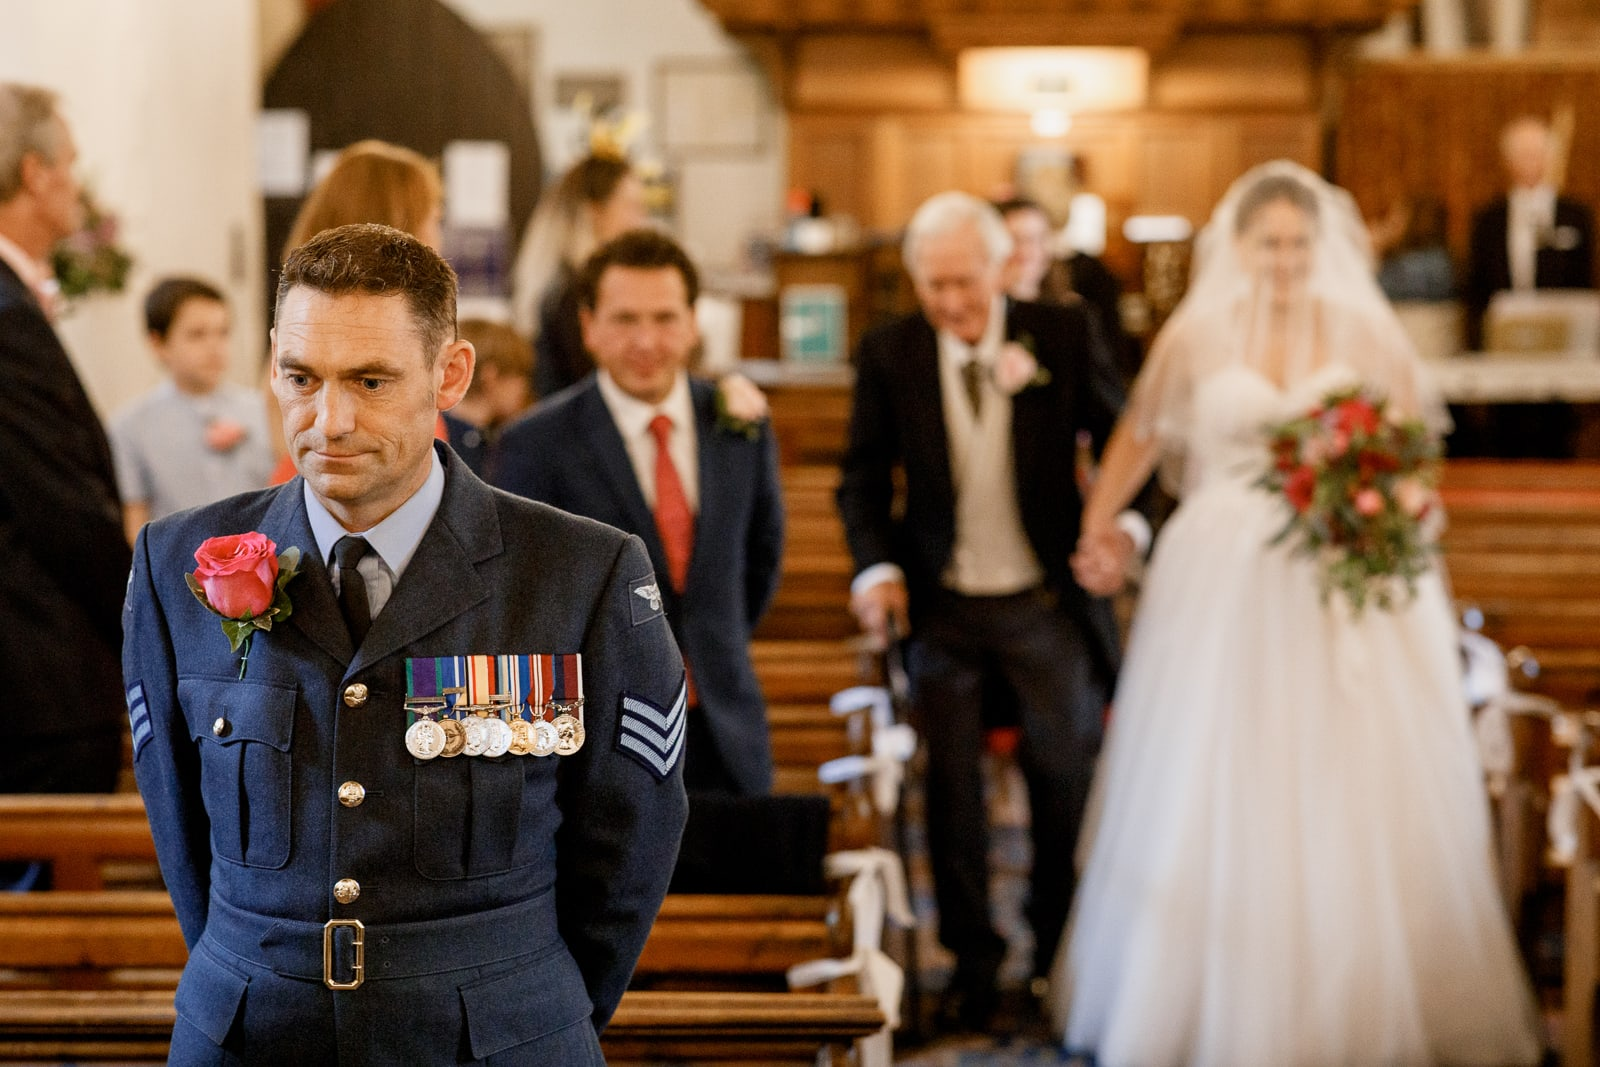 military groom waiting at front of church for bride arriving